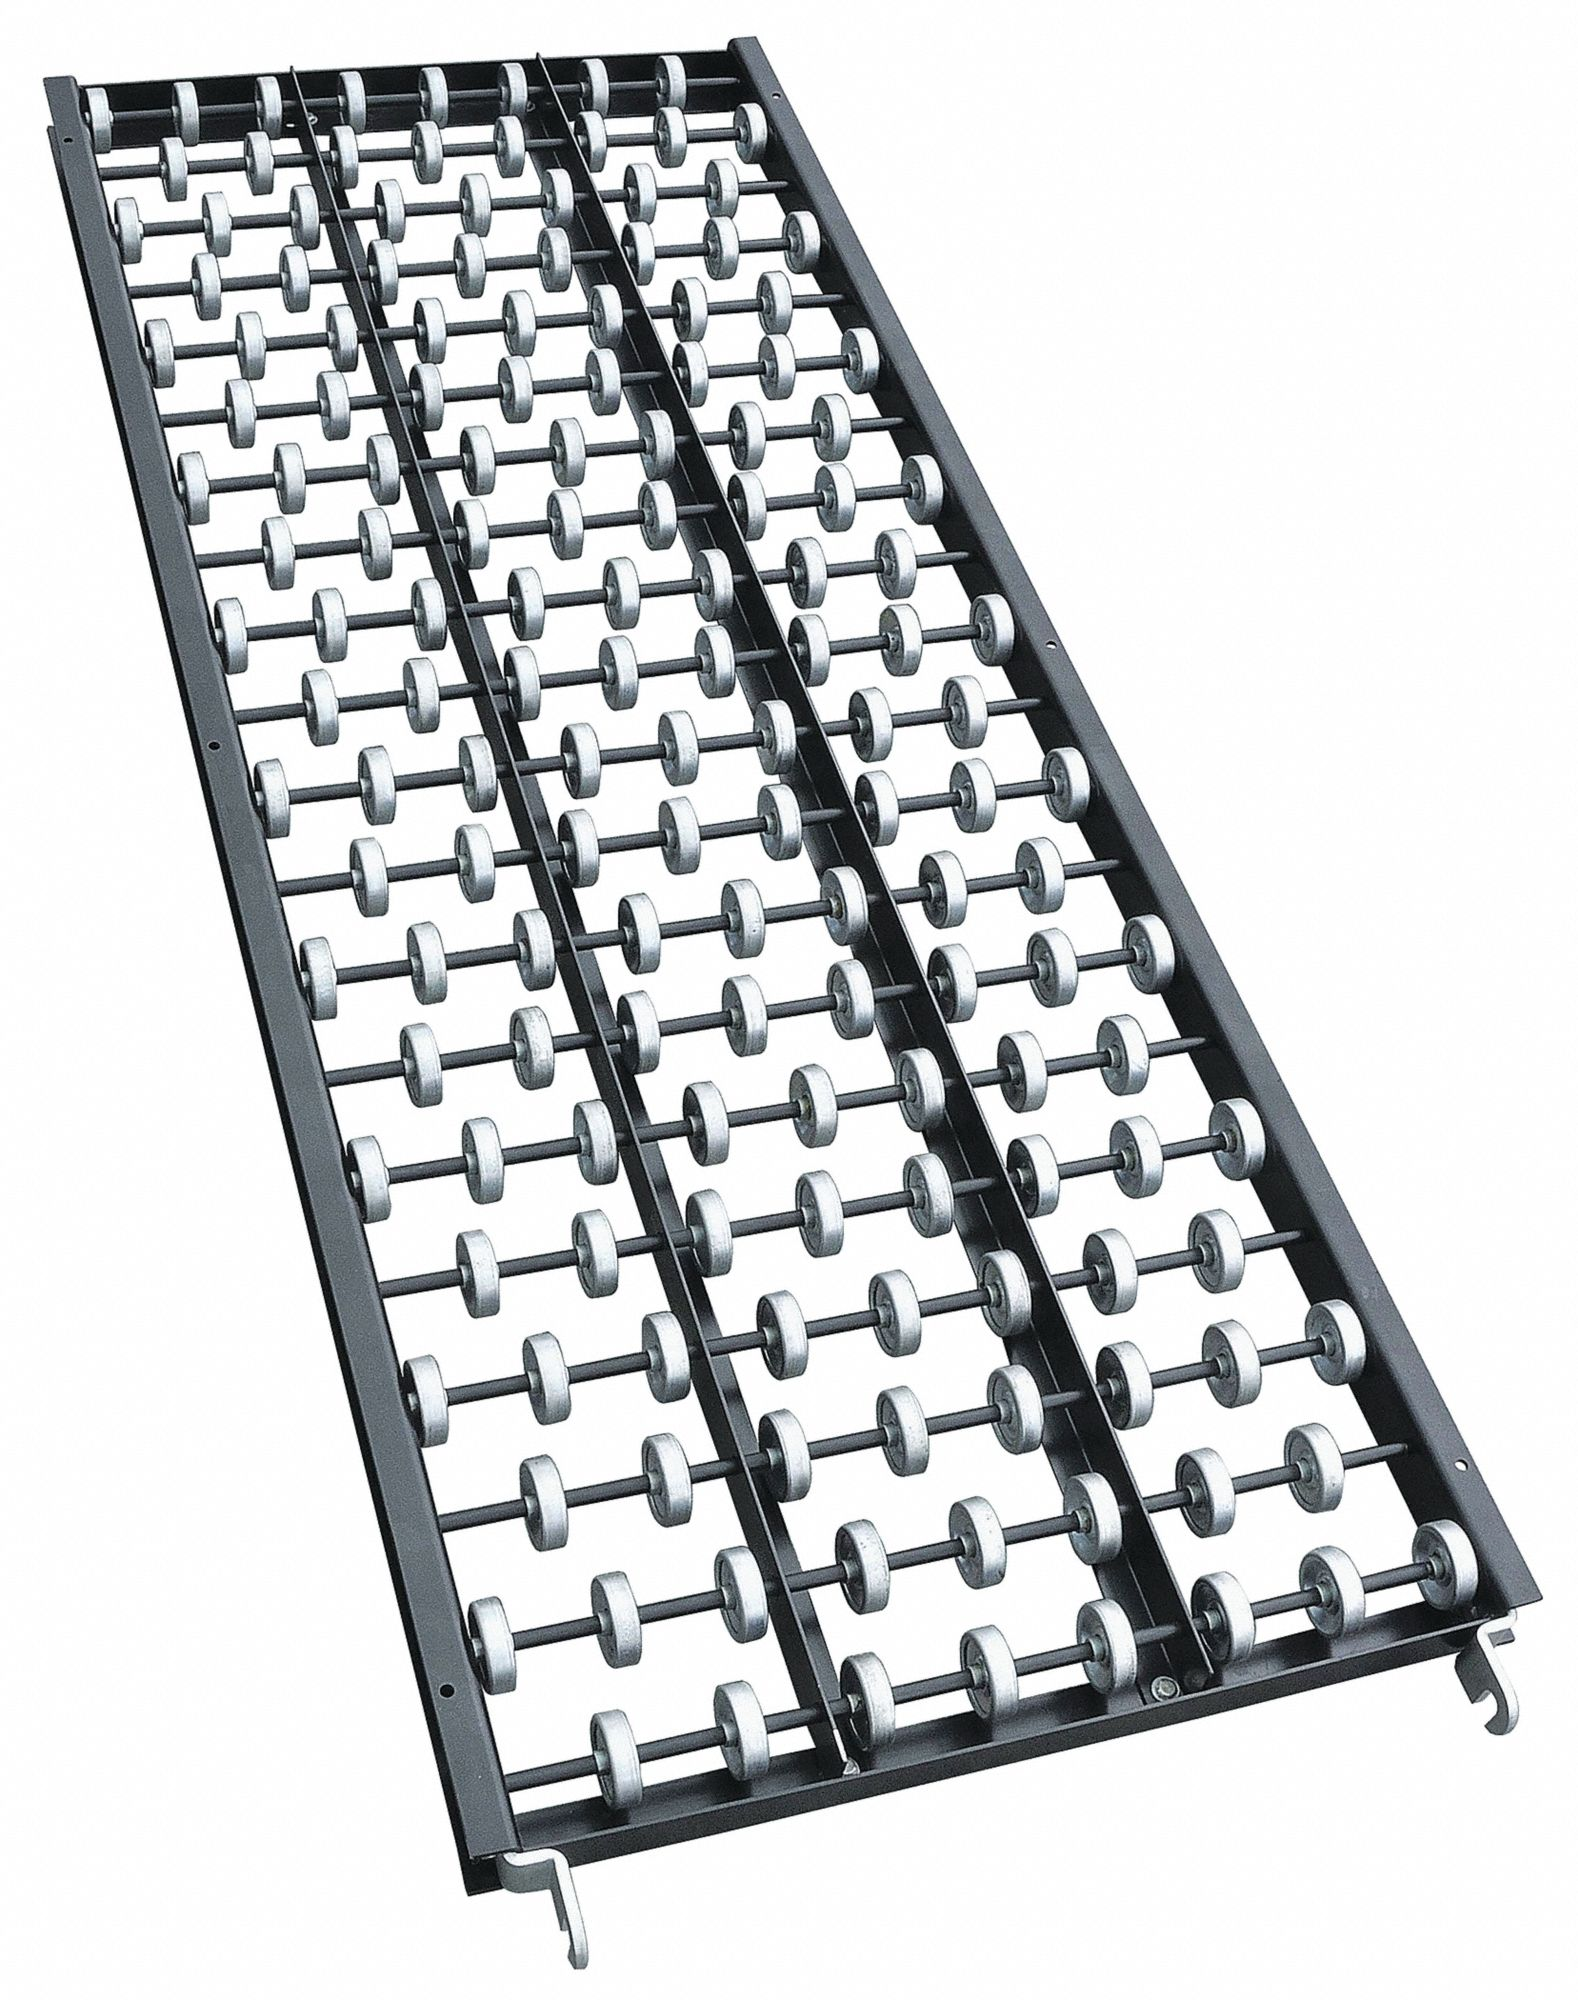 Extend-a-stick Conveyors